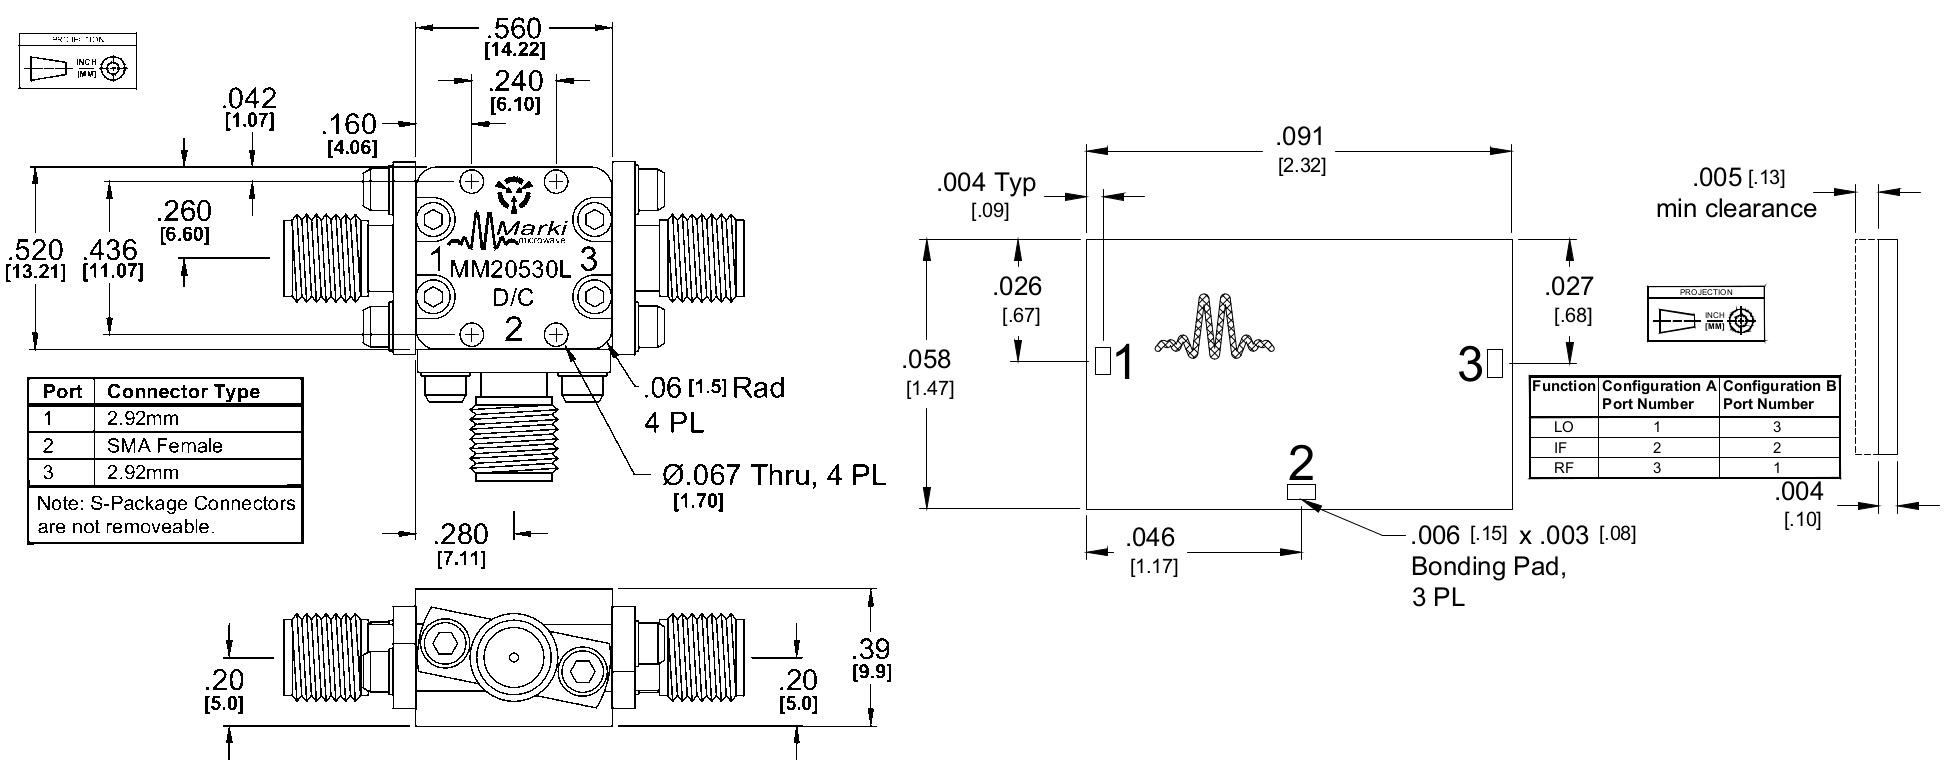 MM2-0530L Mixer Package Diagram